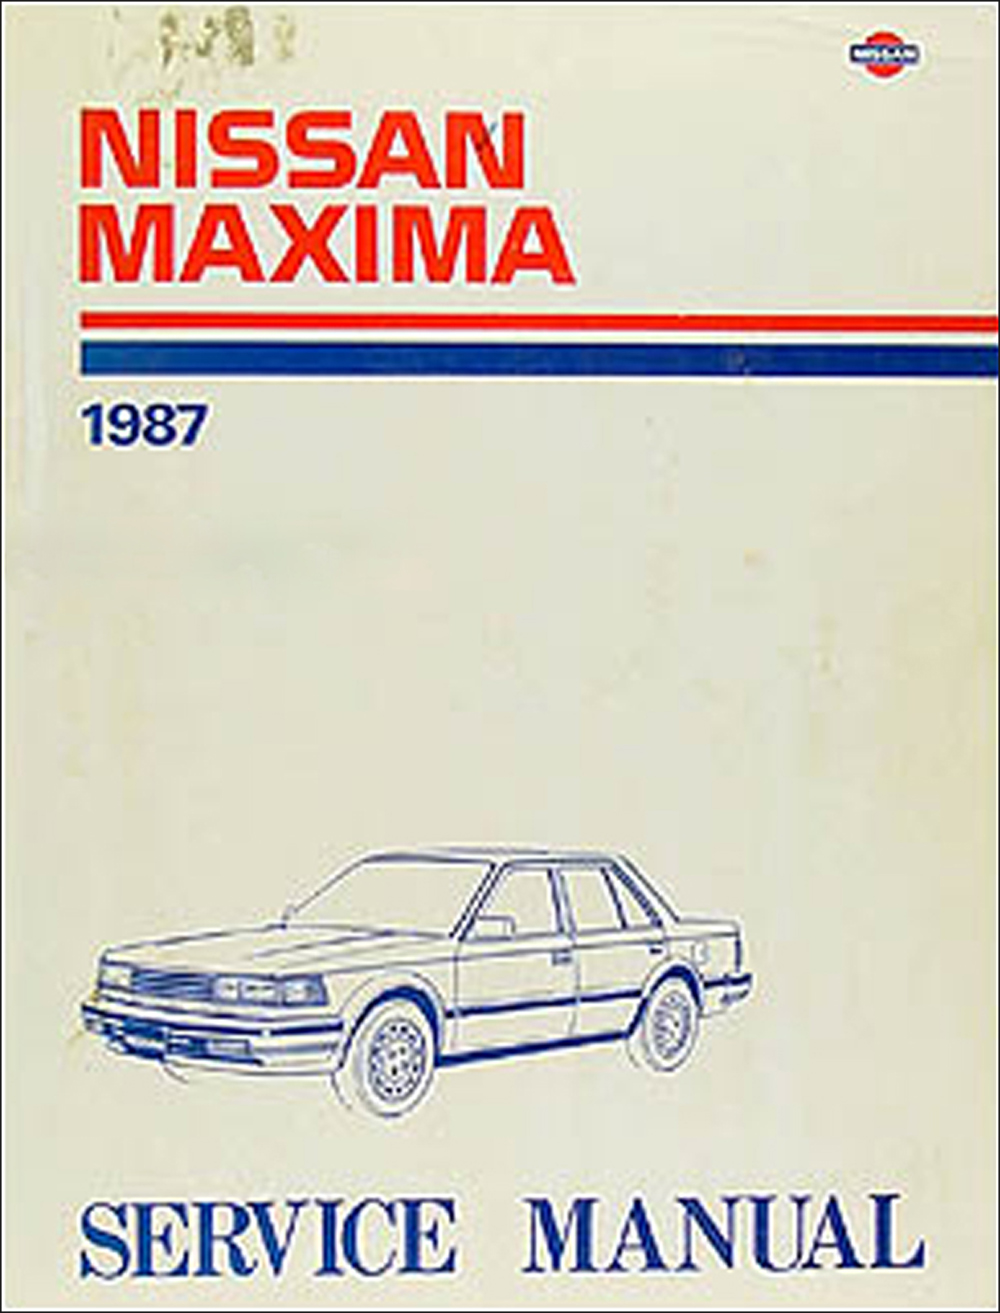 1987 Nissan Maxima Repair Shop Manual Original